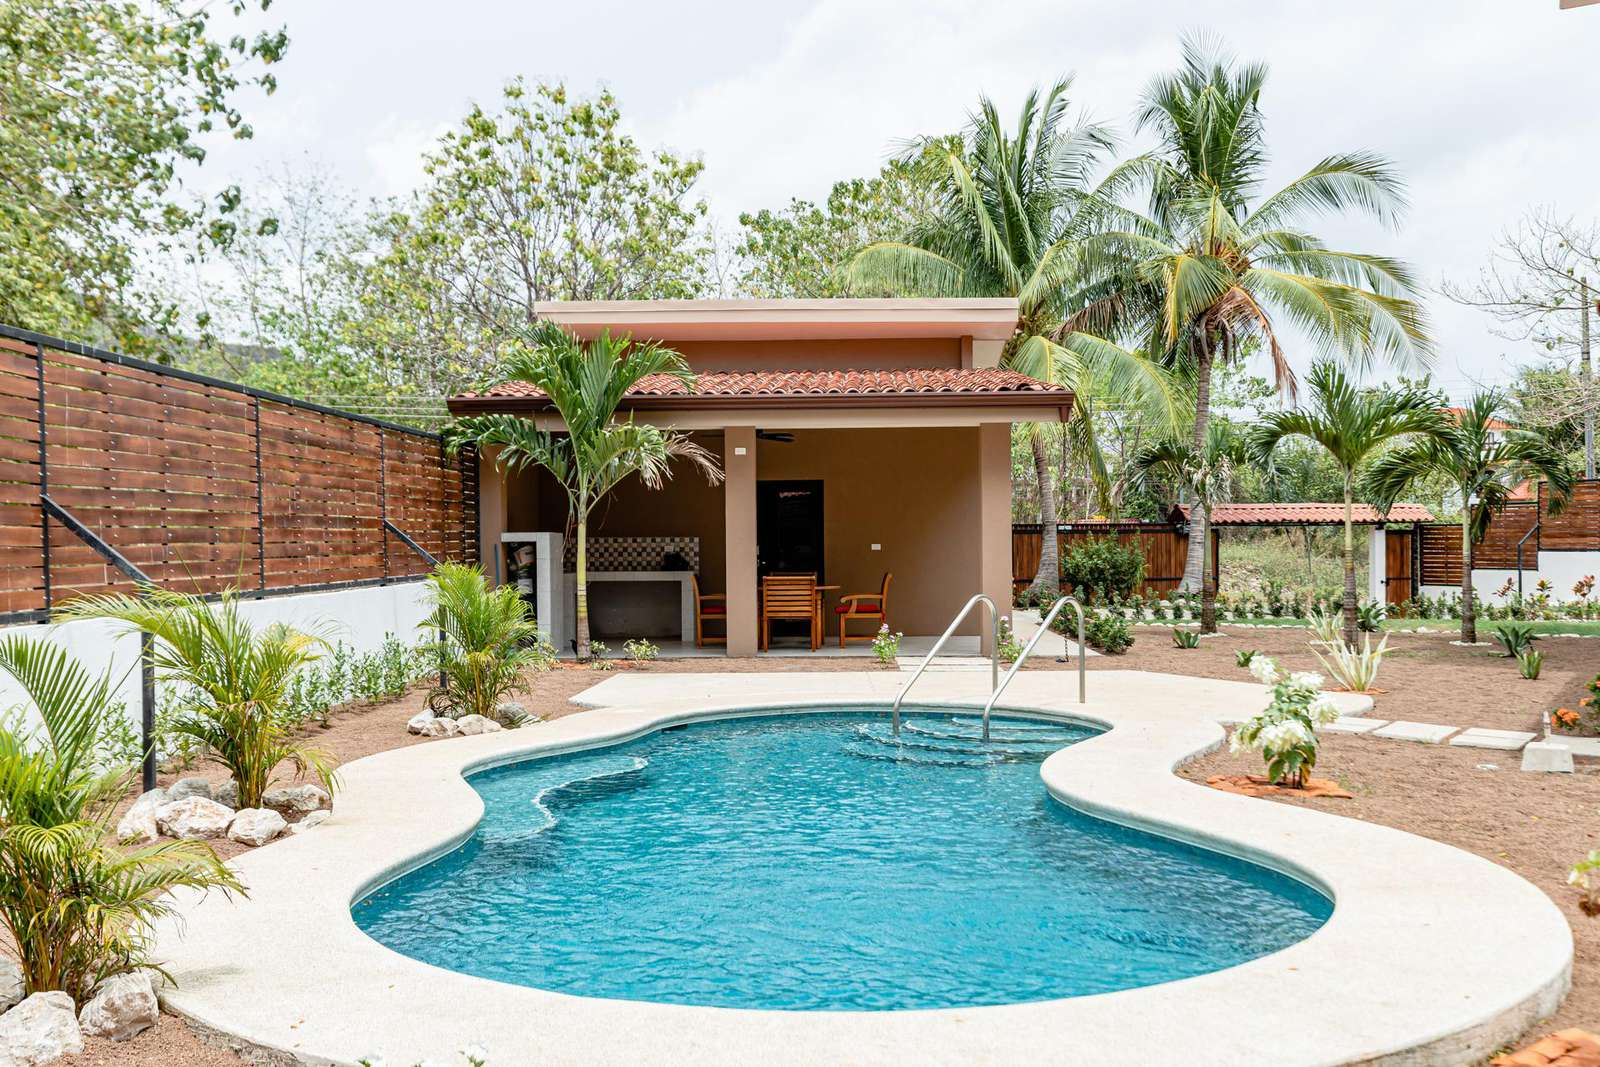 Pool and detached apartment